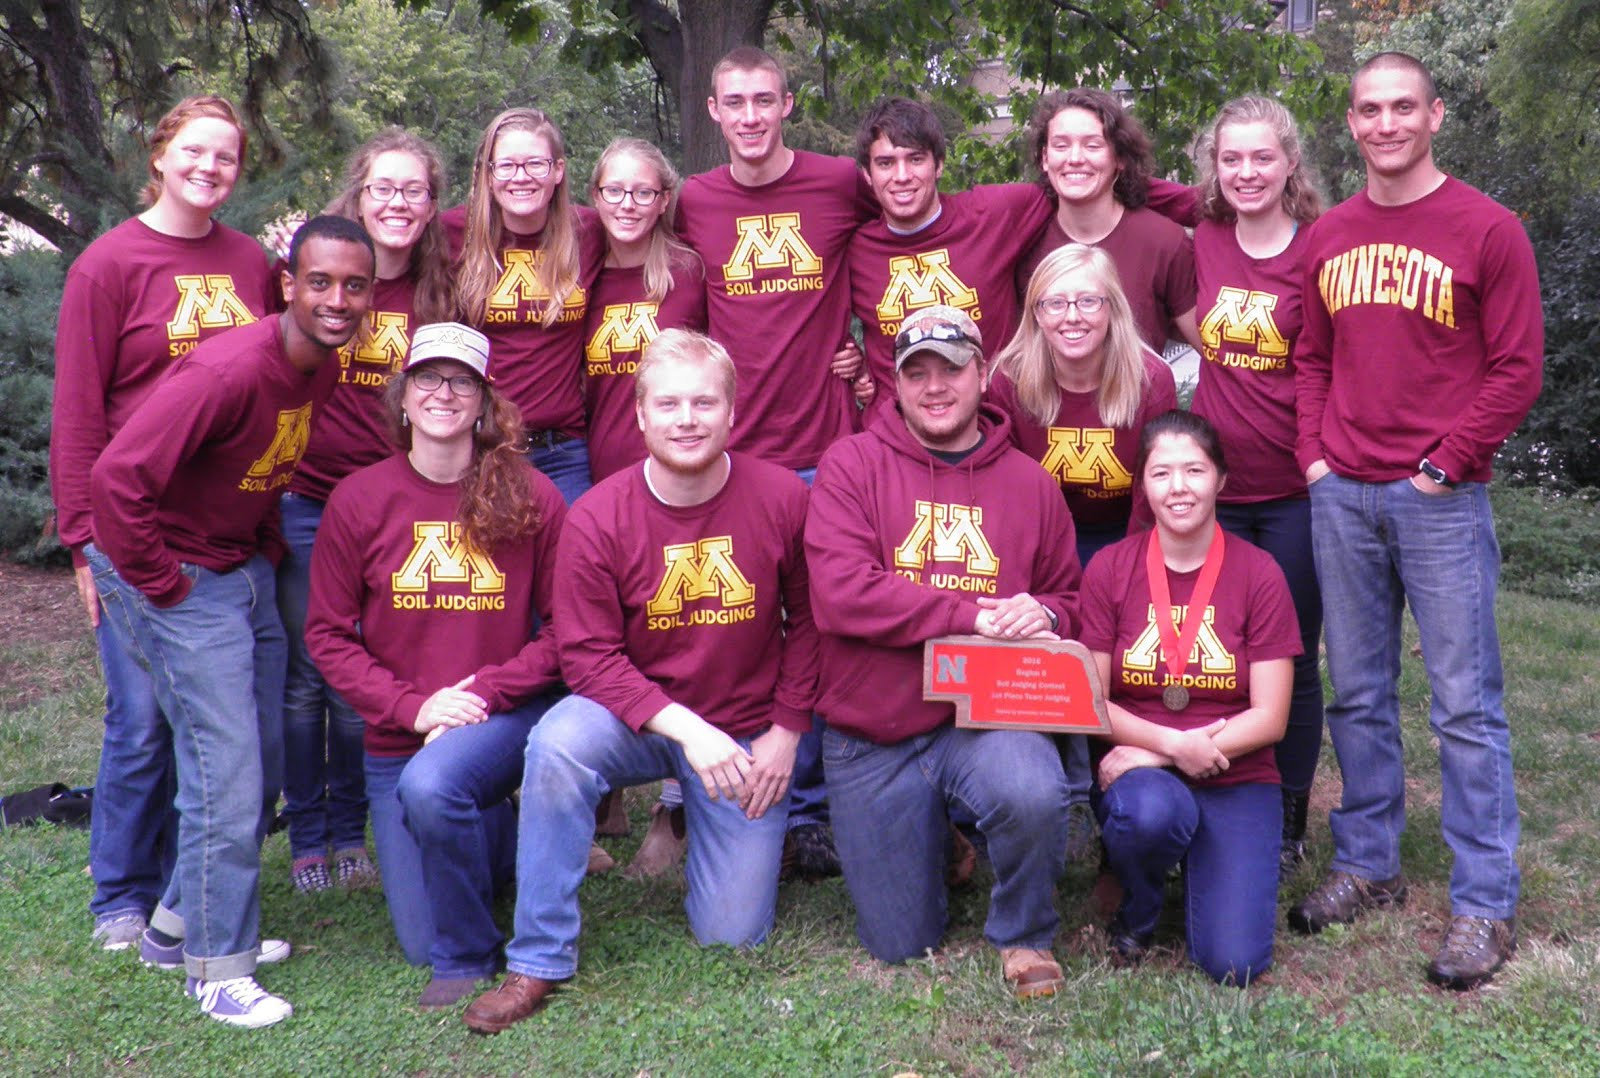 2016 University of Minnesota Soil Judging Team